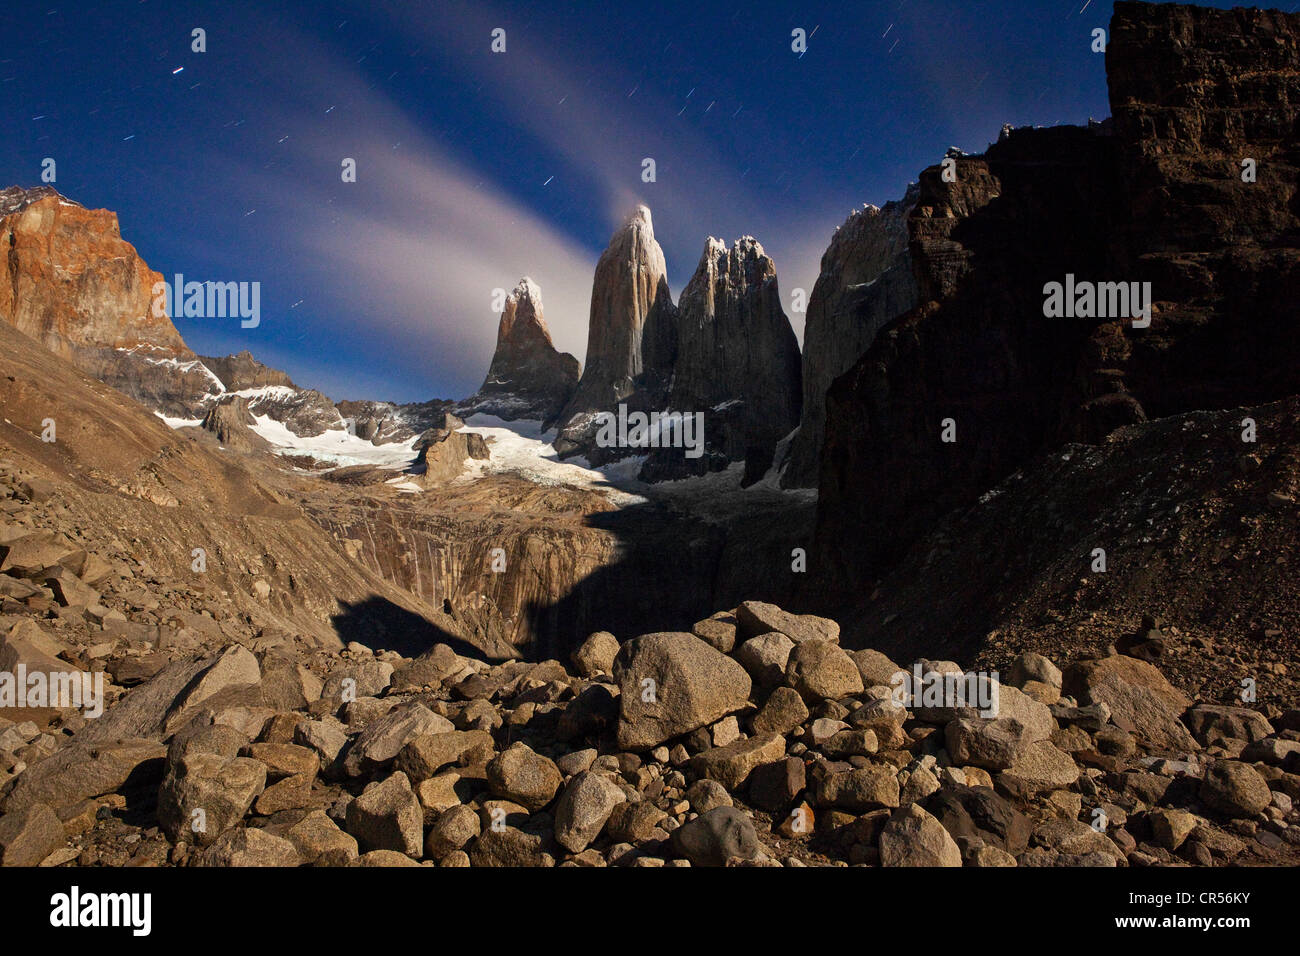 Moonlight over the Torres del Paine mountain group, Torres del Paine National Park, Patagonia region, Chile, South - Stock Image